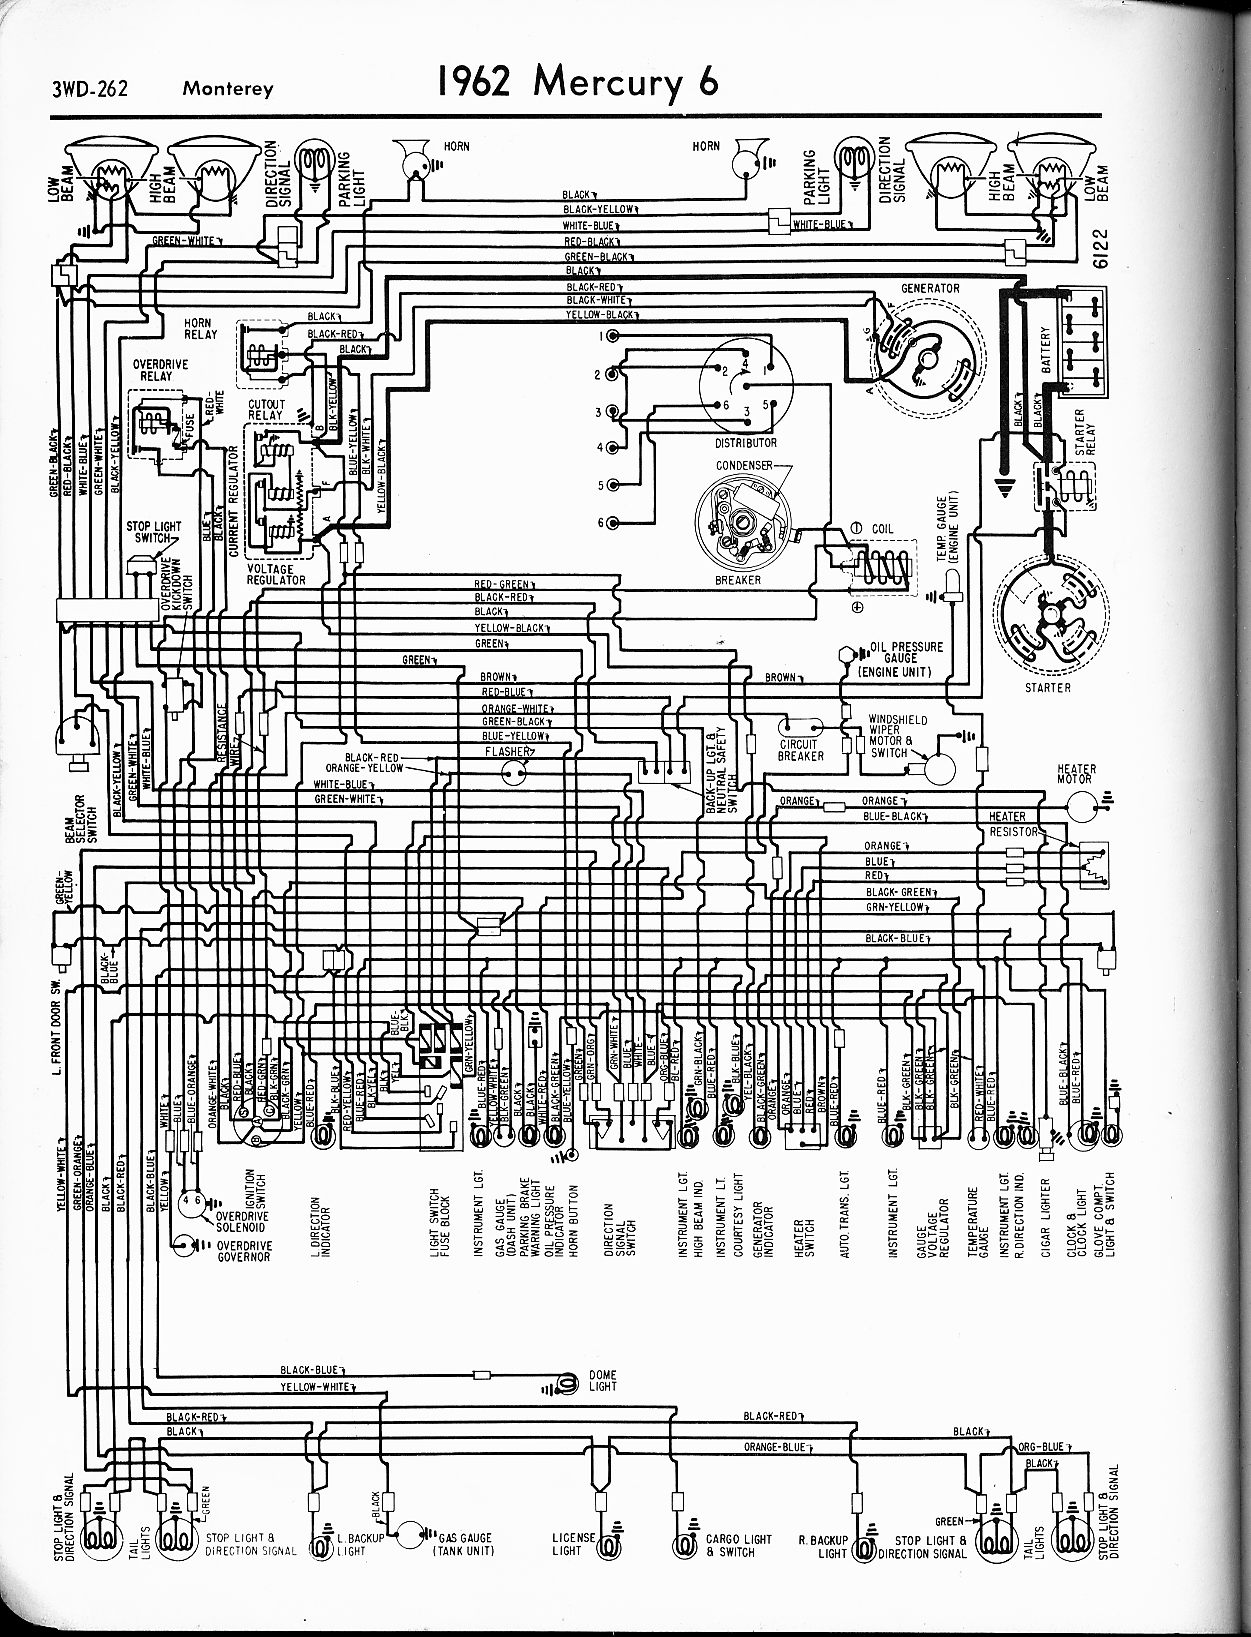 1954 Lincoln Wiring Diagrams Trusted Wiring Diagram \u2022 1965 Lincoln  Wiring Diagrams Automotive 1965 Lincoln Wiring Diagram